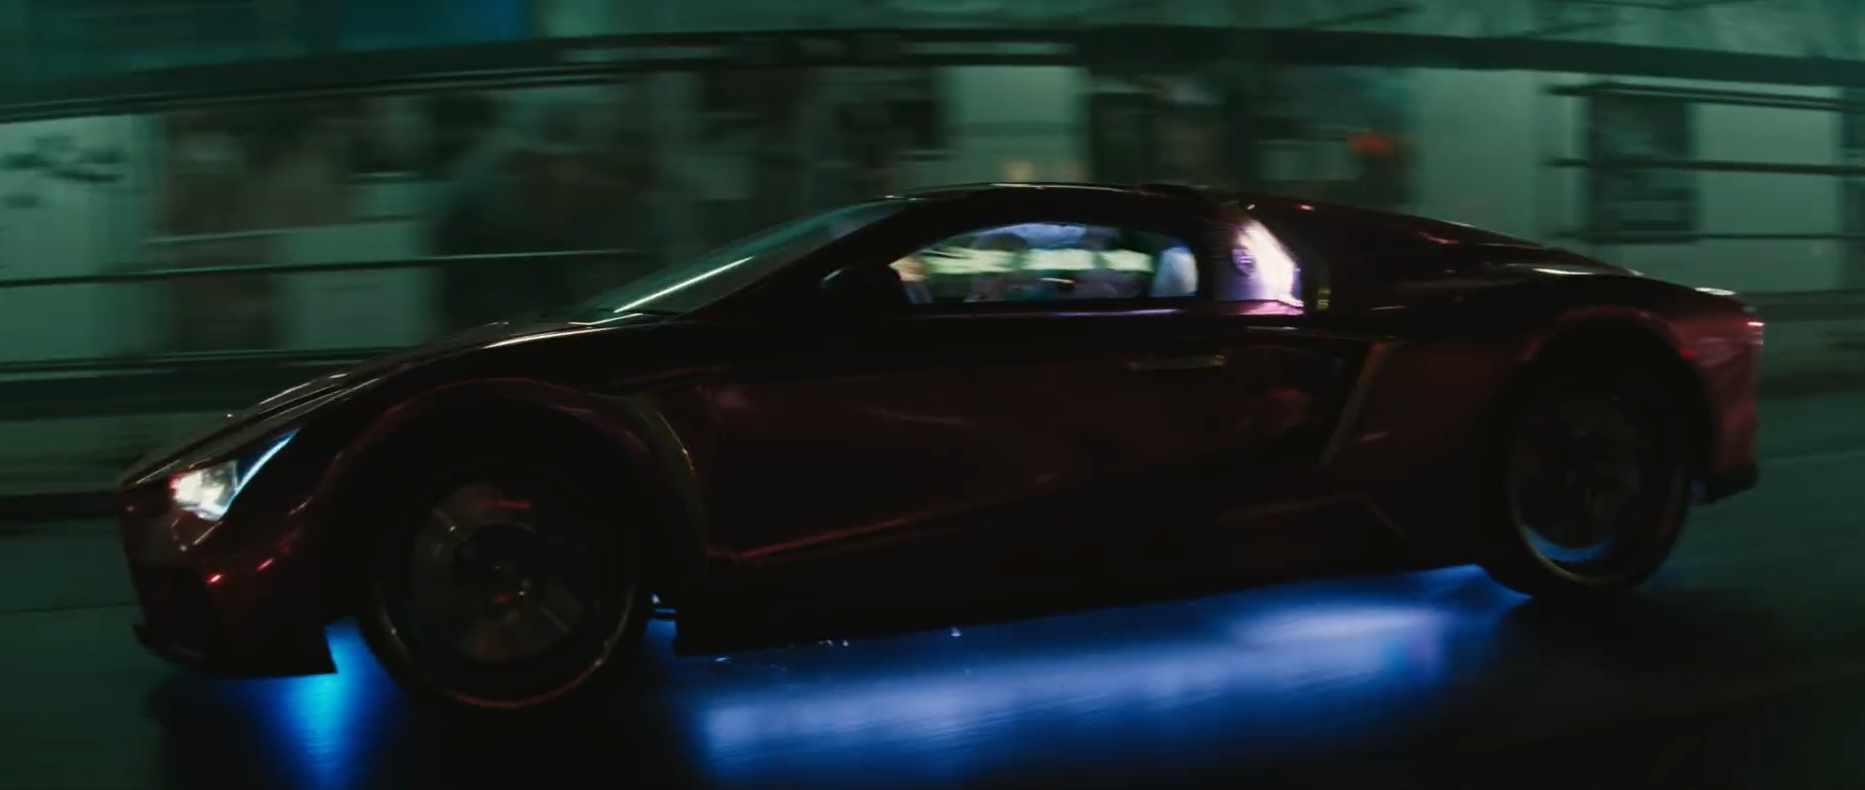 De auto van The Joker in de film Suicide Squad, de Vaydor G35.